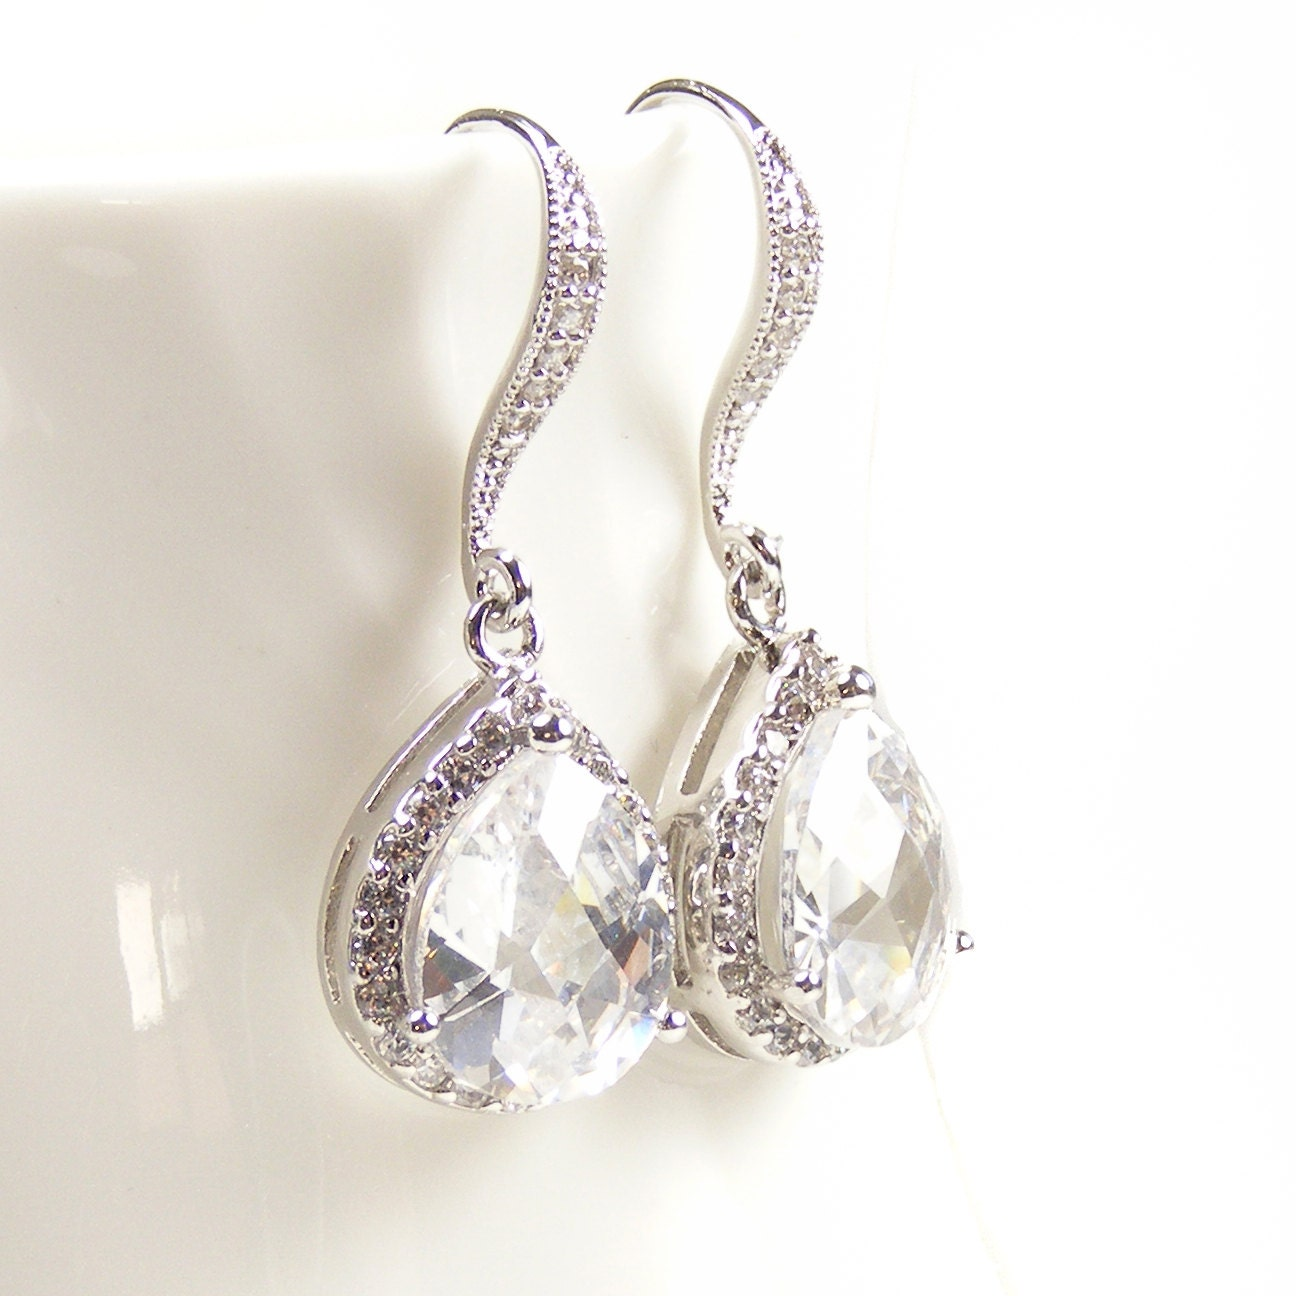 Crystal Bridal Earrings, Estate Style Bridal Jewelry, Drop Earrings with Silver & Crystal Teardrops